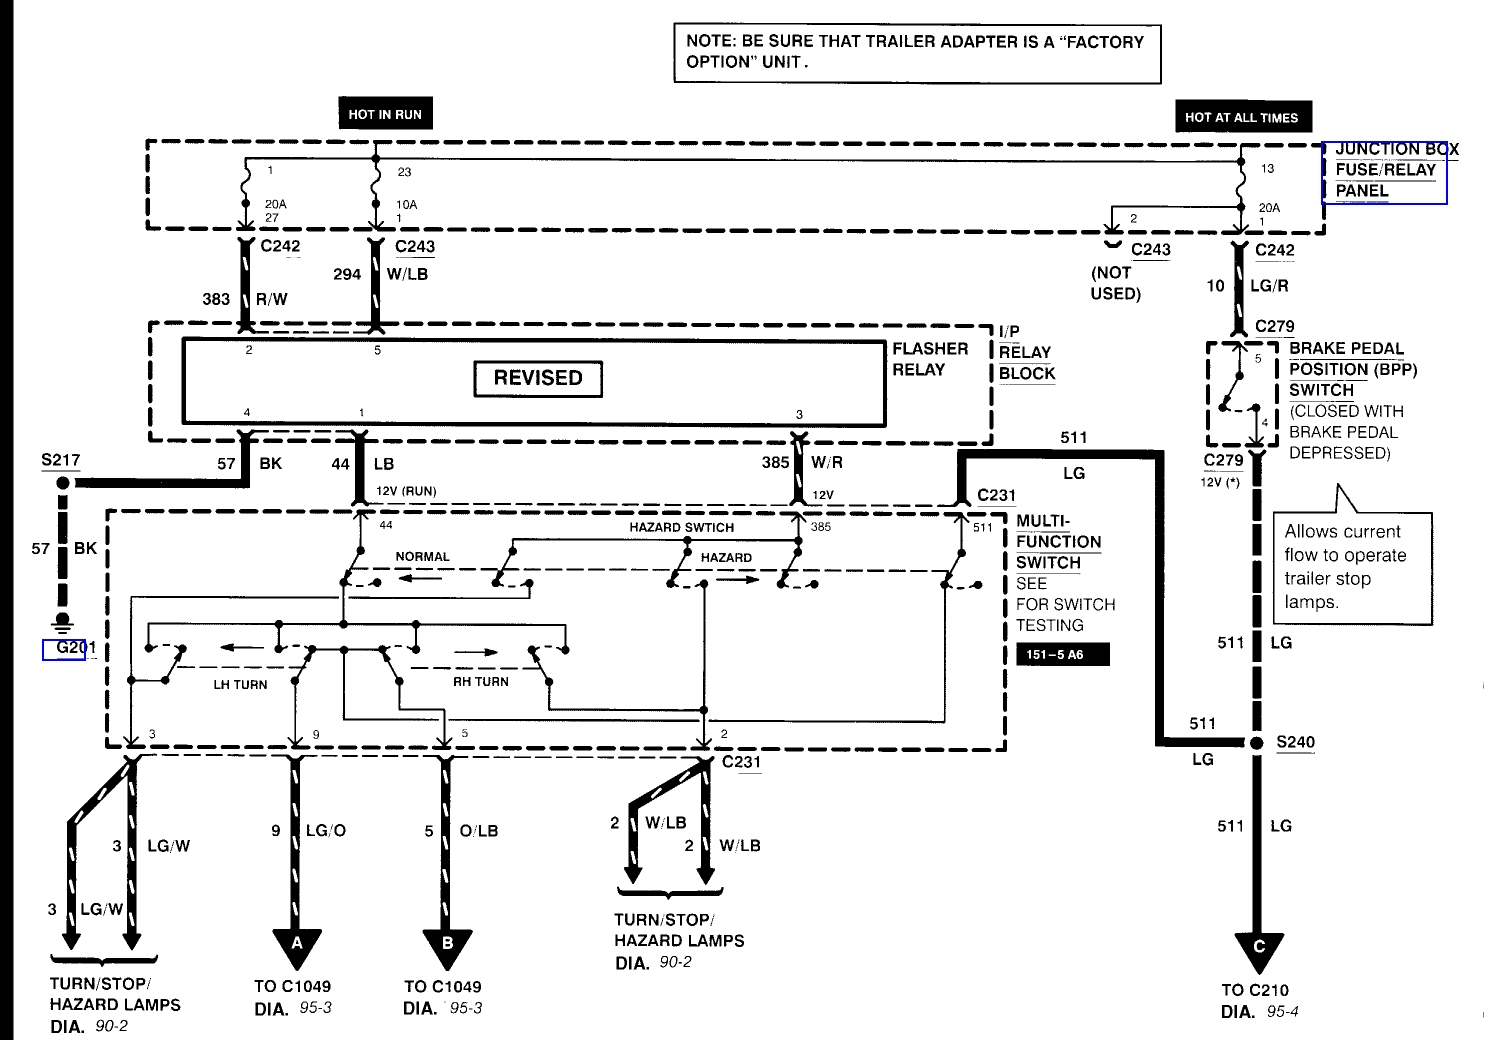 Ford F250 Trailer Wiring Harness Diagram | Free Wiring Diagram